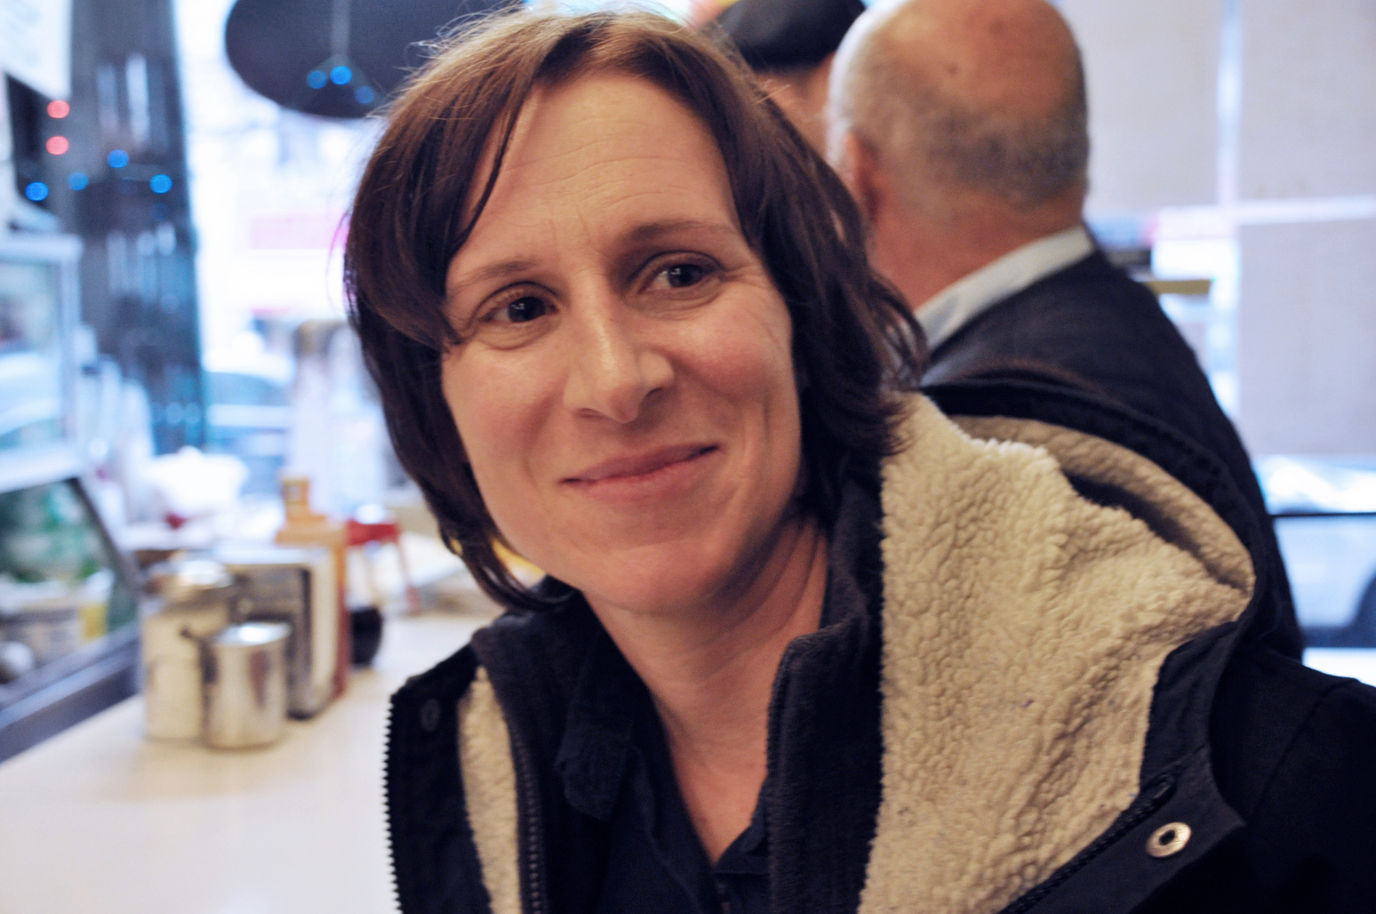 Filmmaker Kelly Reichardt smiling in the camera